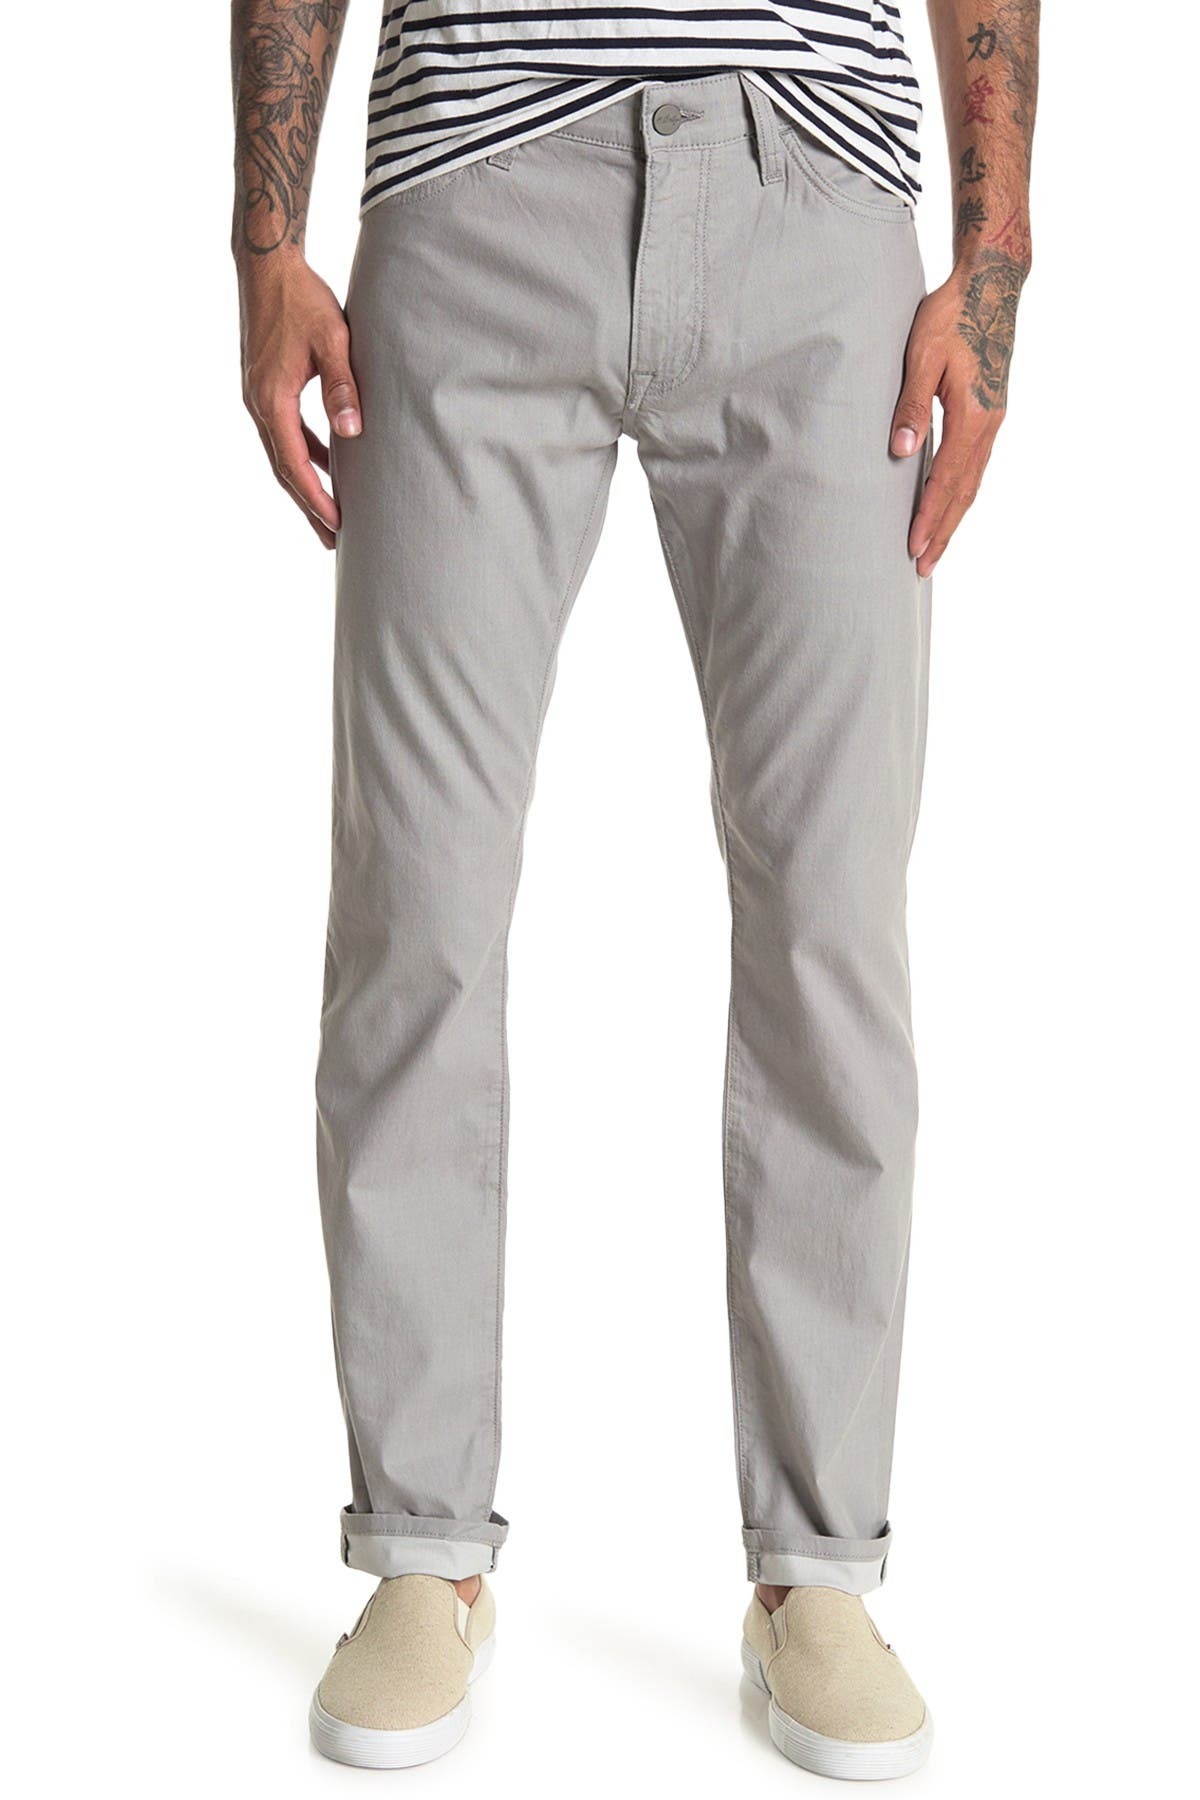 Image of 34 Heritage 34 Cool Grey Reversed Twill Pants